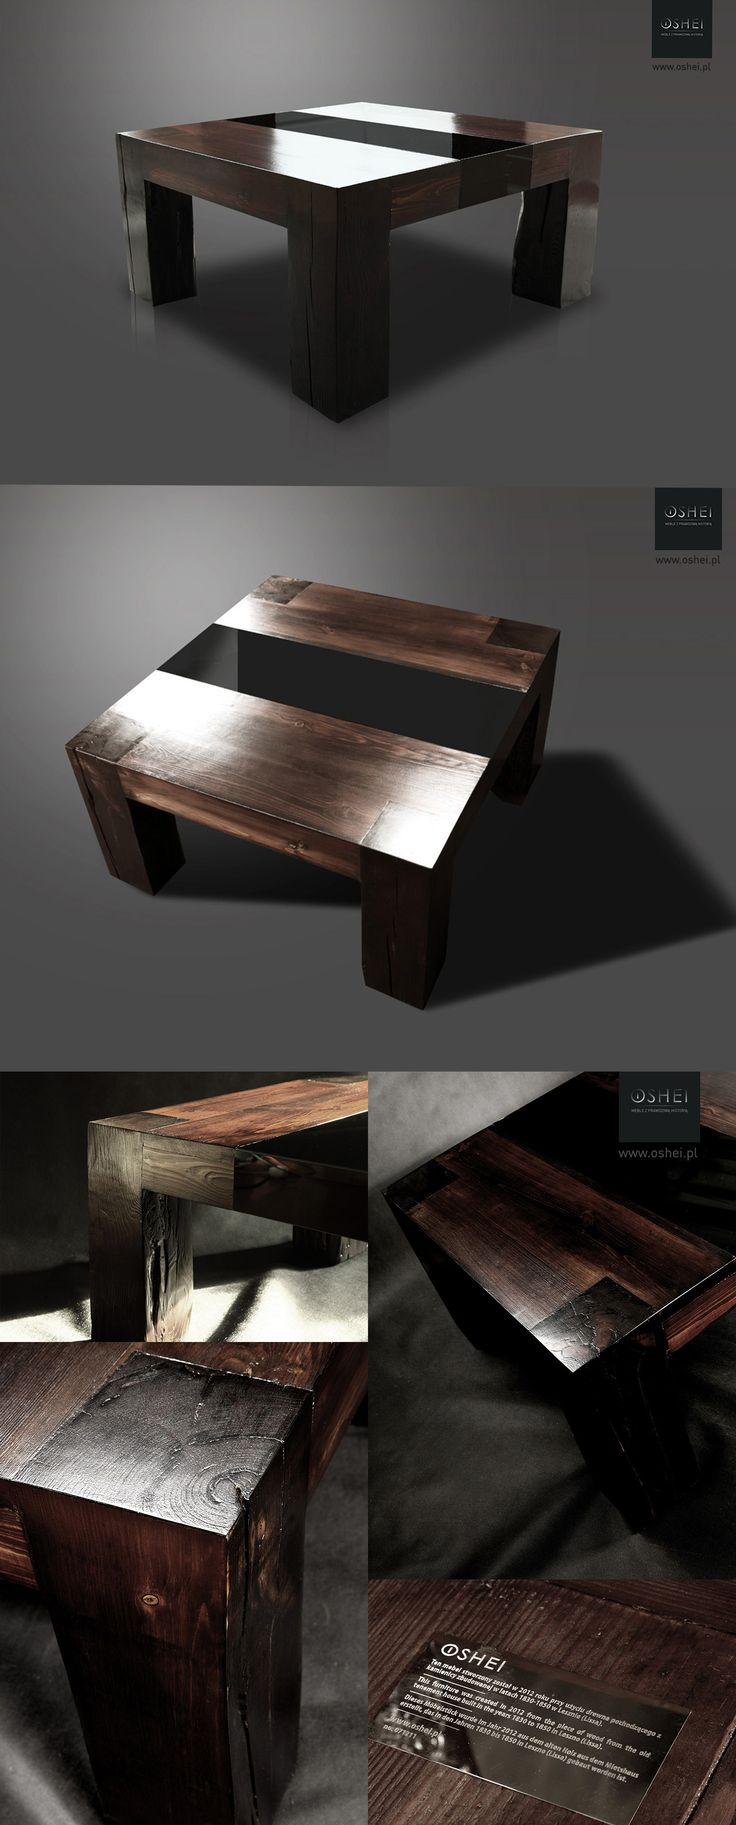 Magic of old wood... OSHEI Suspirio is a unique, massive table made in 2012. It come from from pine wood collected from the restored tenement, which was built in the years 1830-1850, in Leszno (Poland).  The analysis shows that the cross-section of wood age at the time of felling tree exceed 110 years, so a tree was planted in the range of years from 1720 to 1750.